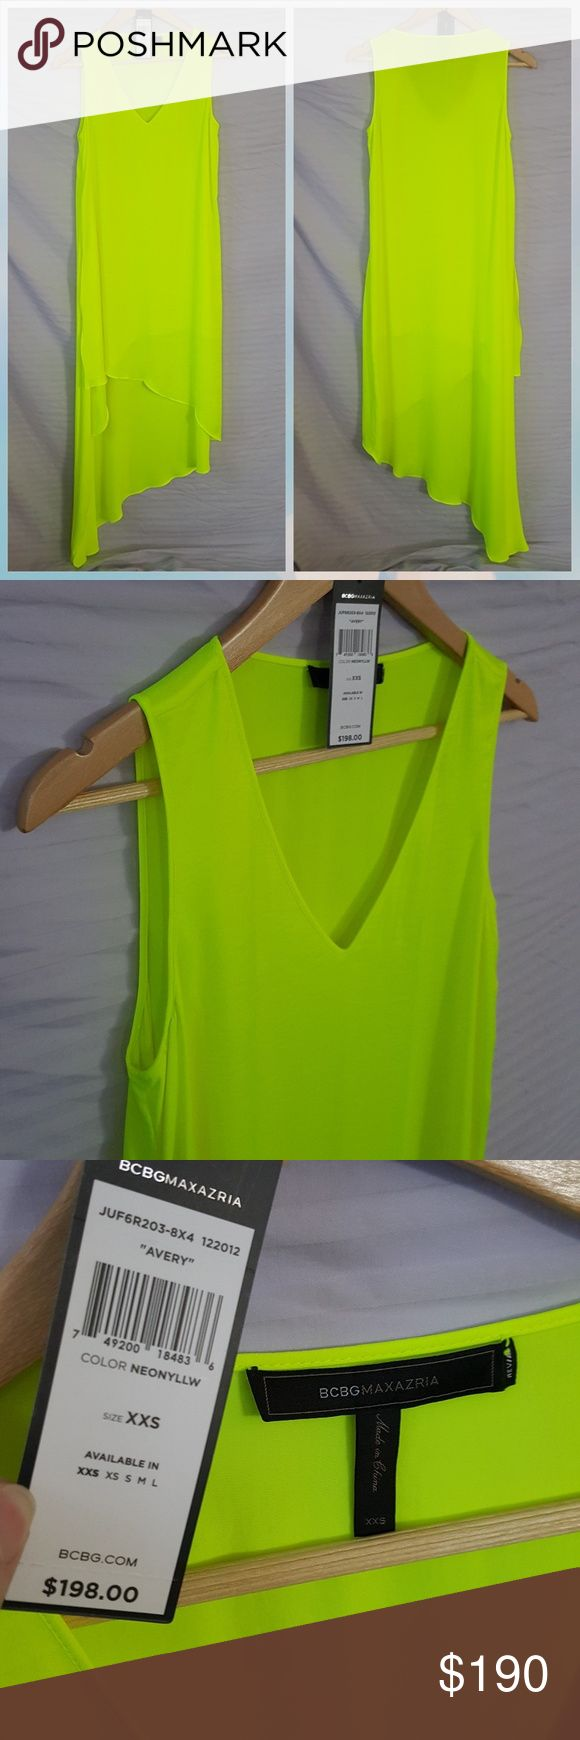 "BCBGMAXAZRIA ""Avery"" Dress Neon Yellow BCBGMAXAZRIA AVERY dress, neon yellow, NEONYLLW, in excellent condition.  Asymetrial hem, high-low style.  Make offers of items or bundles!  Make offers on items and bundles! BCBGMaxAzria Dresses"